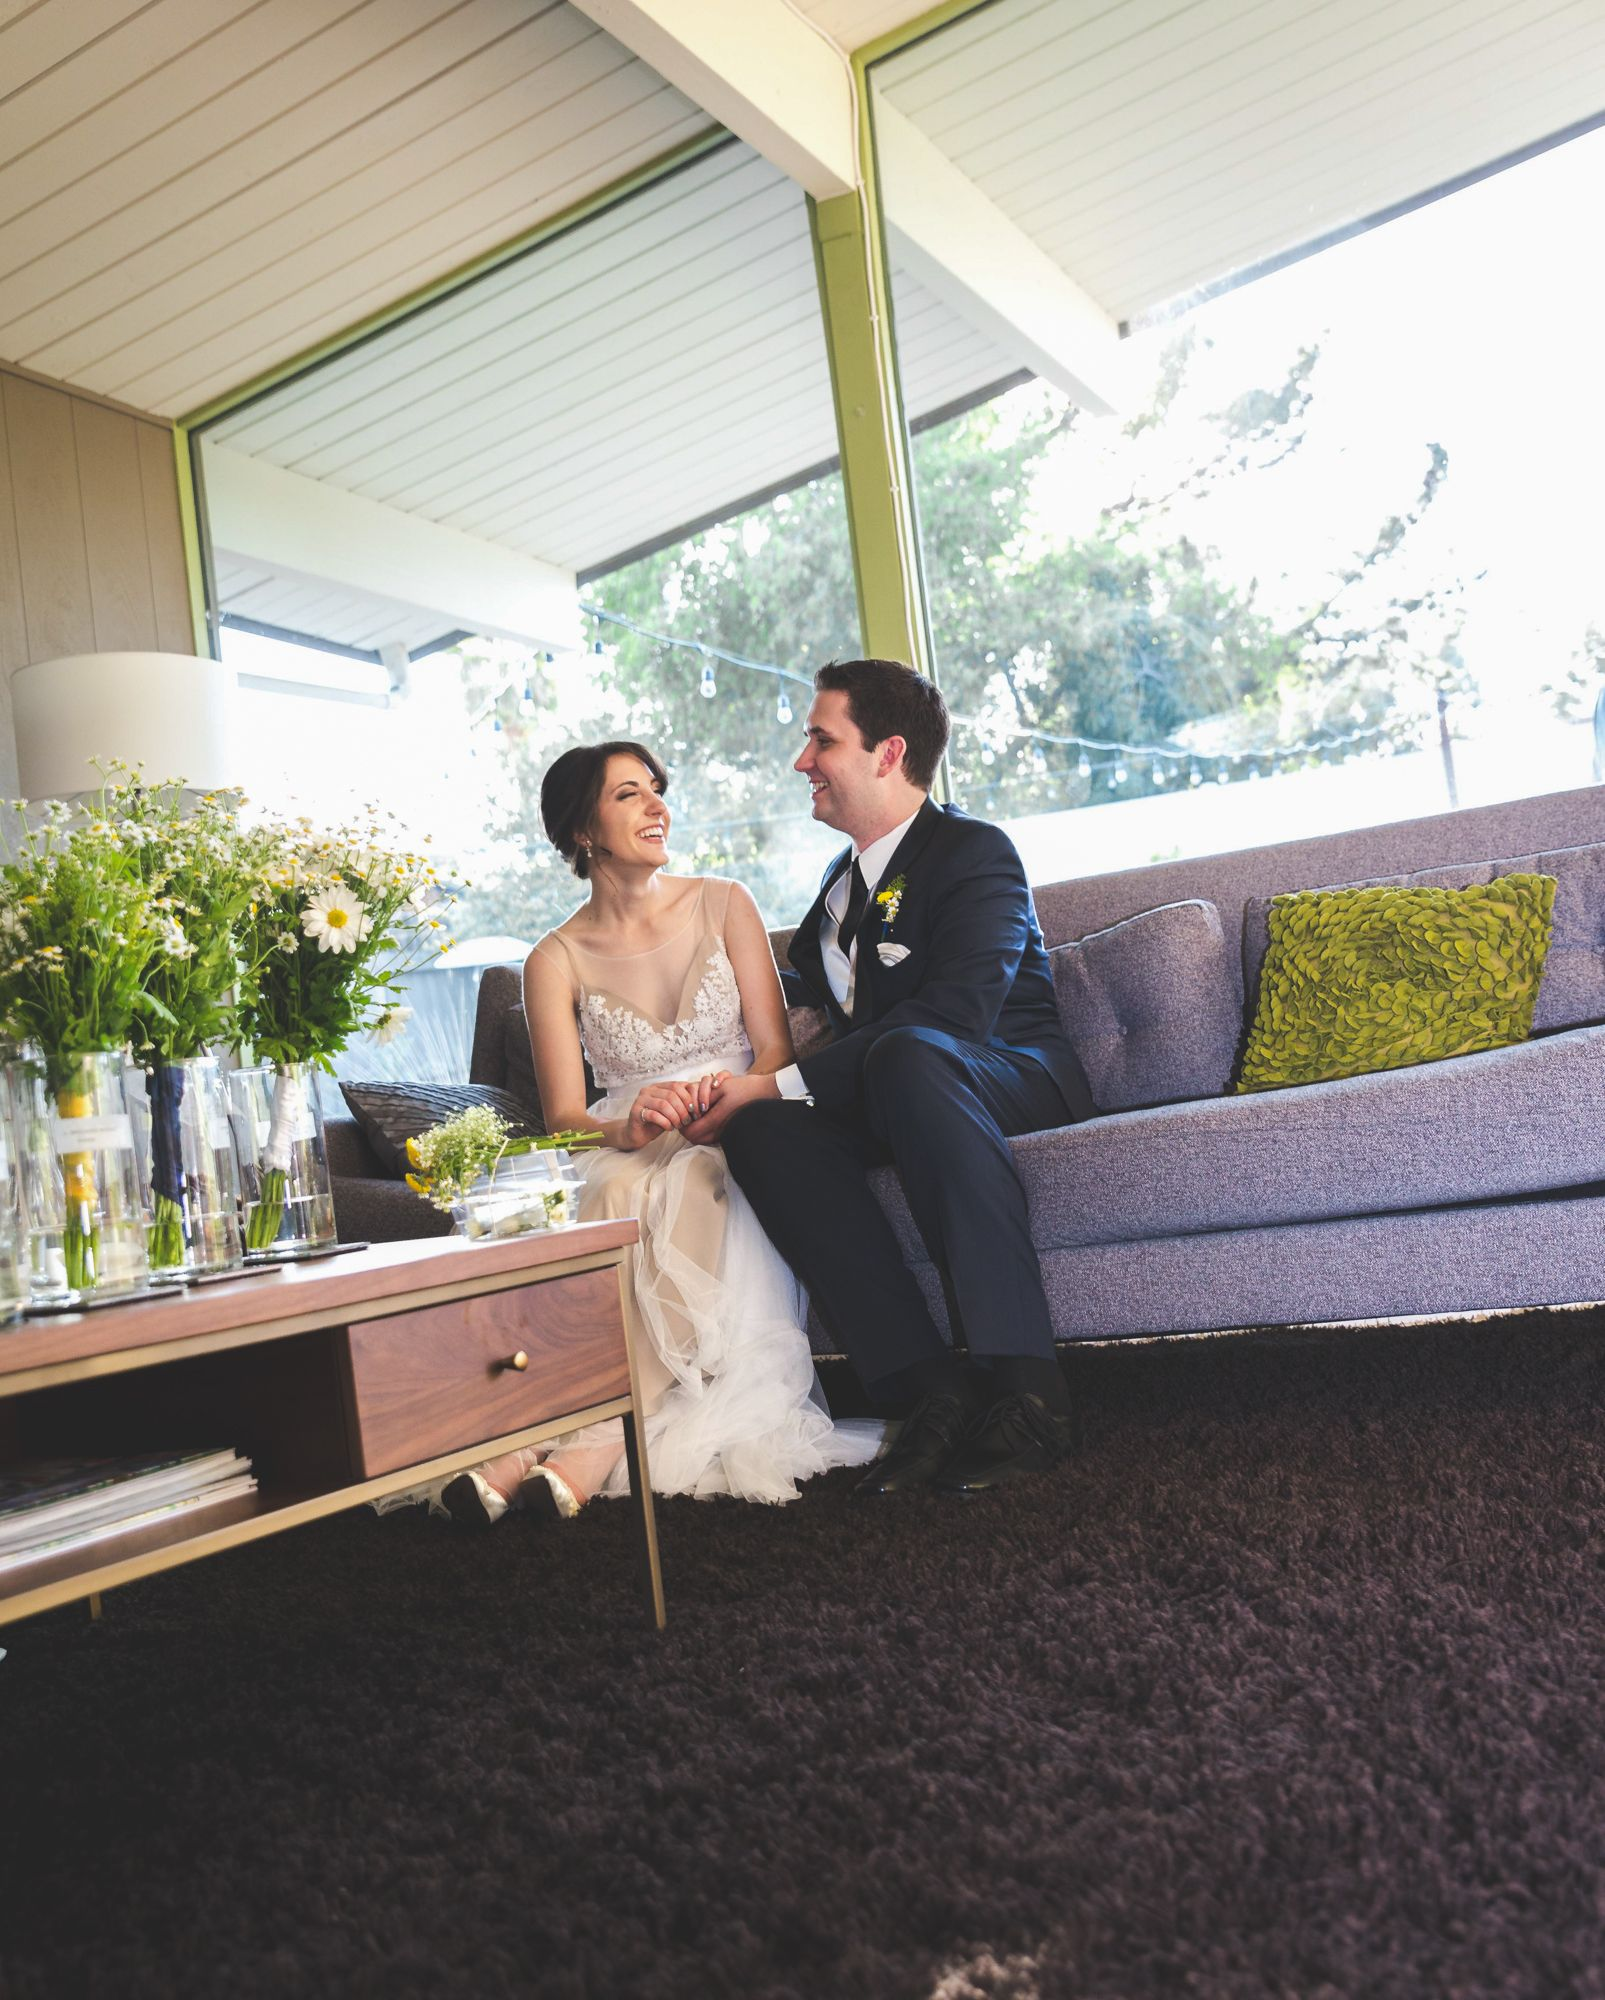 A Classic Wedding With A Retro Spin At Emmanuel